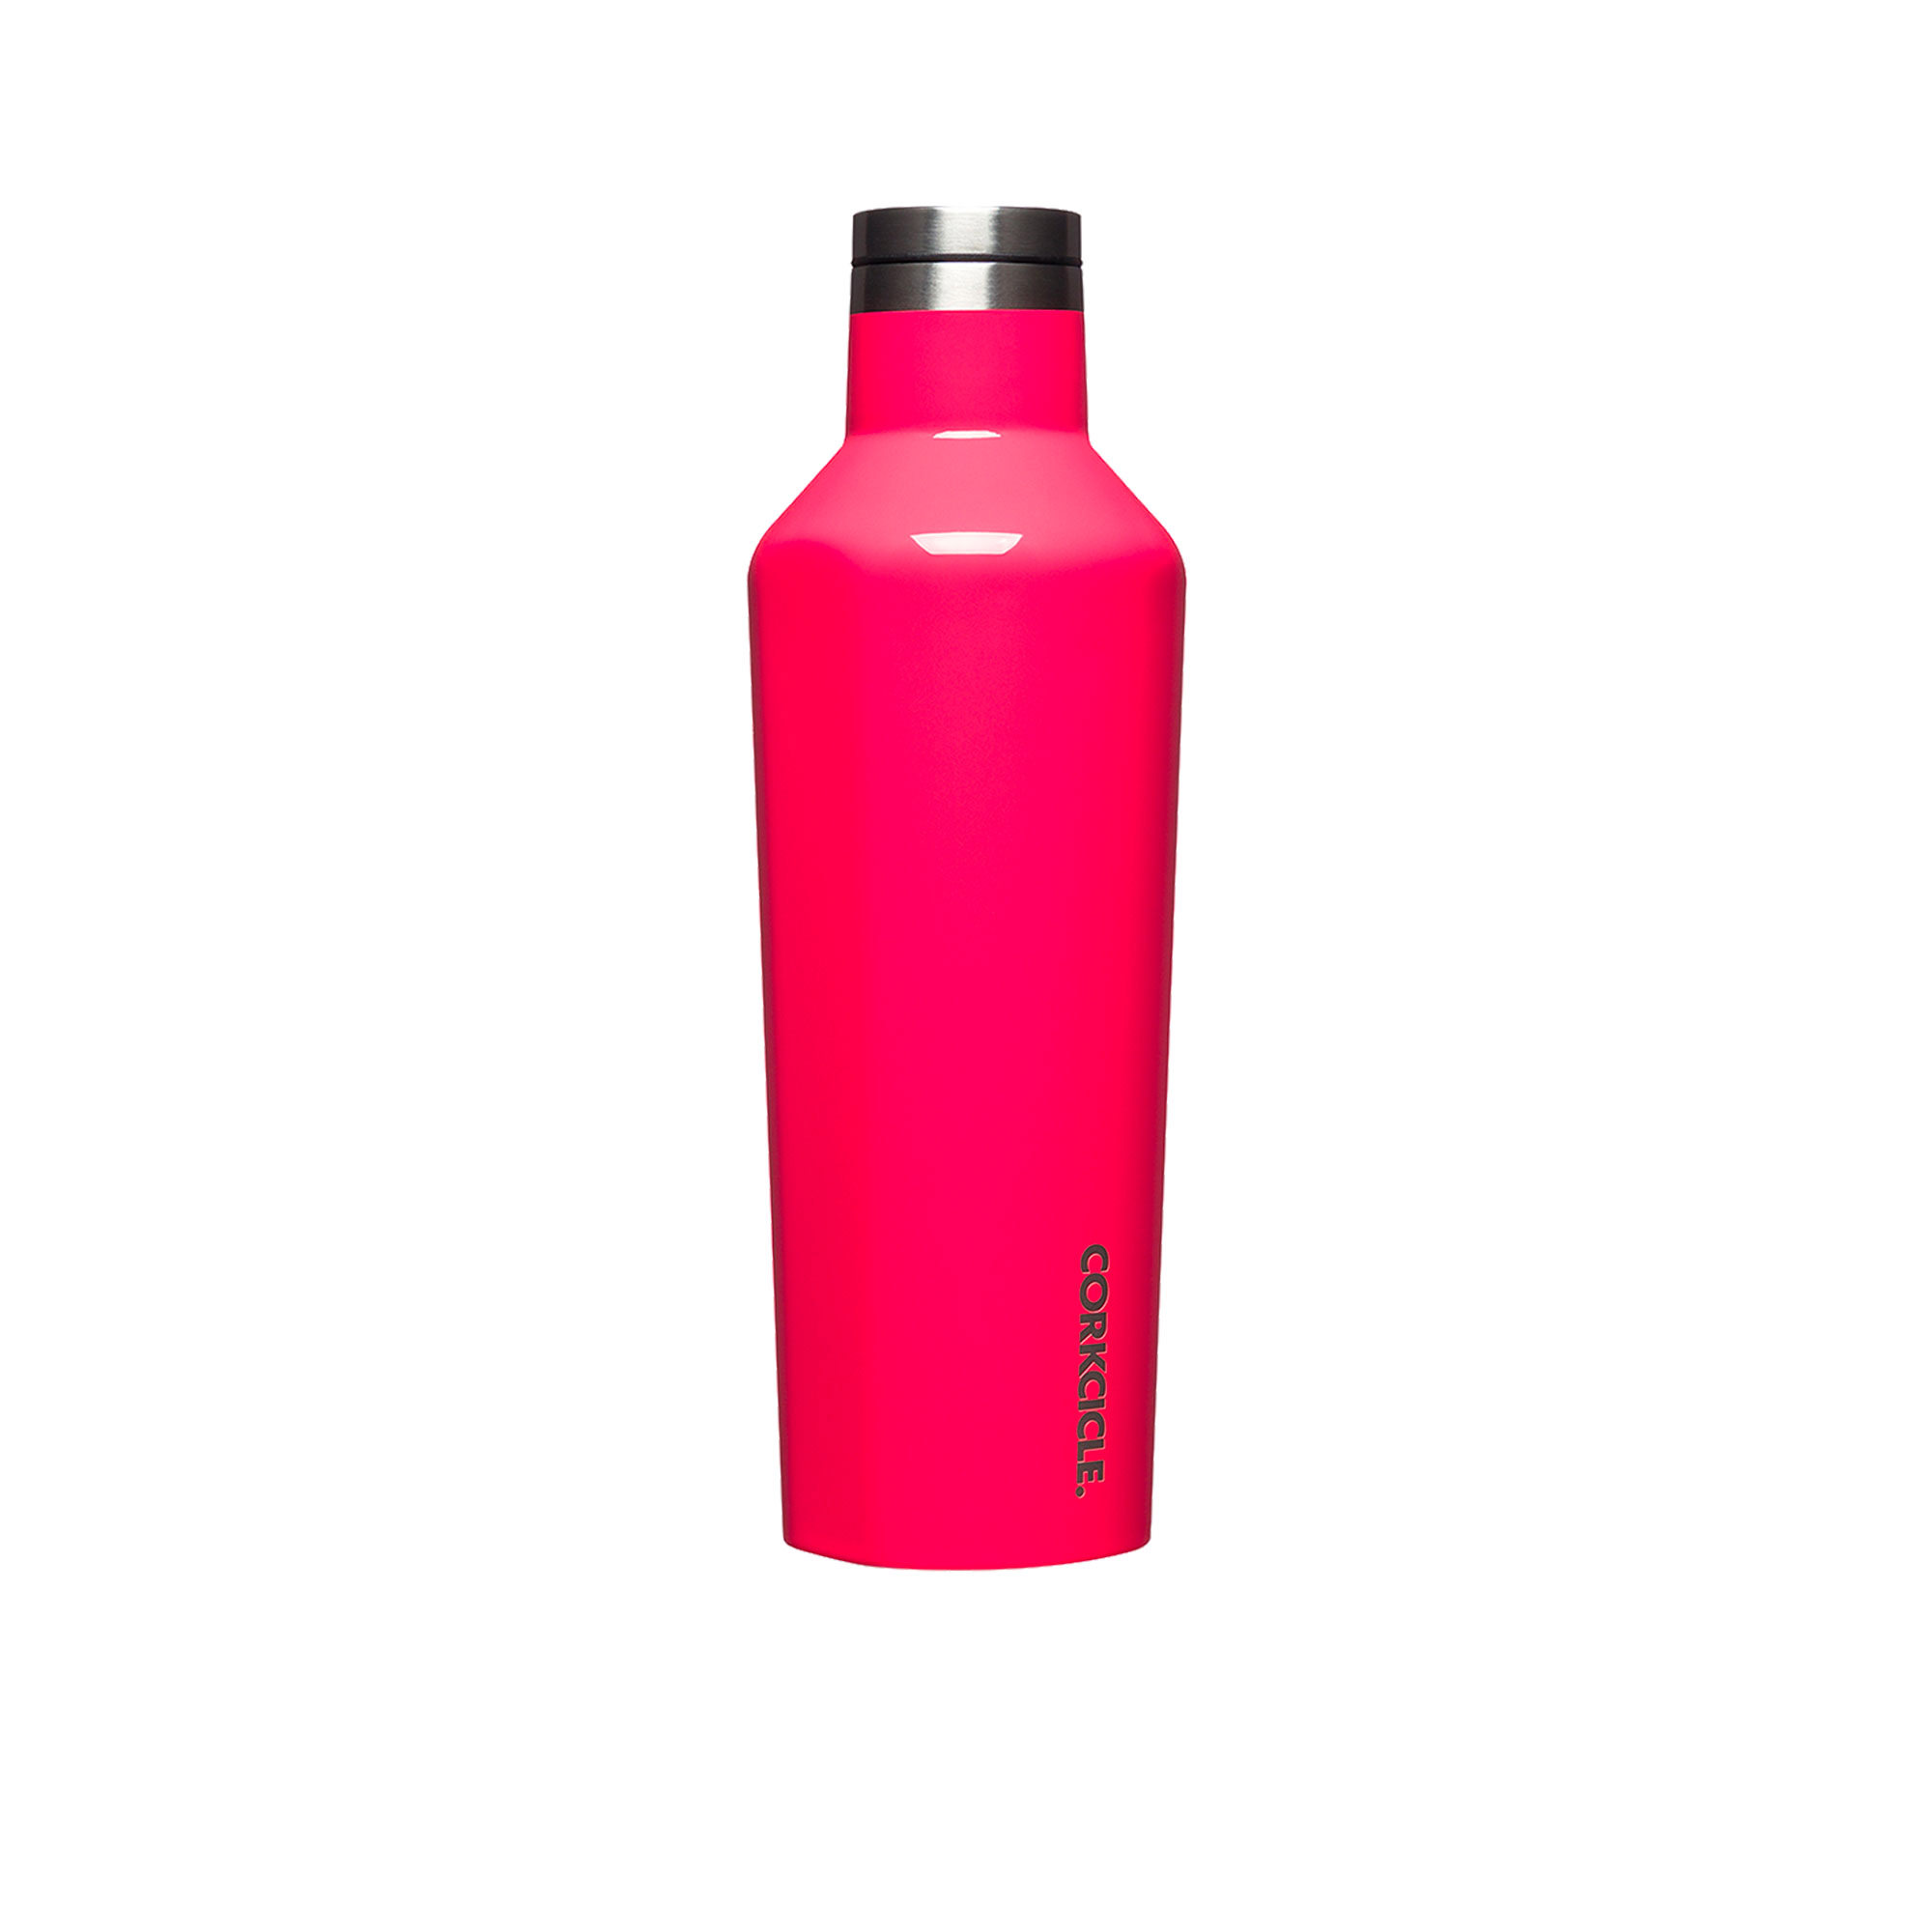 Corkcicle Classic Canteen Insulated Drink Bottle 475ml Flamingo